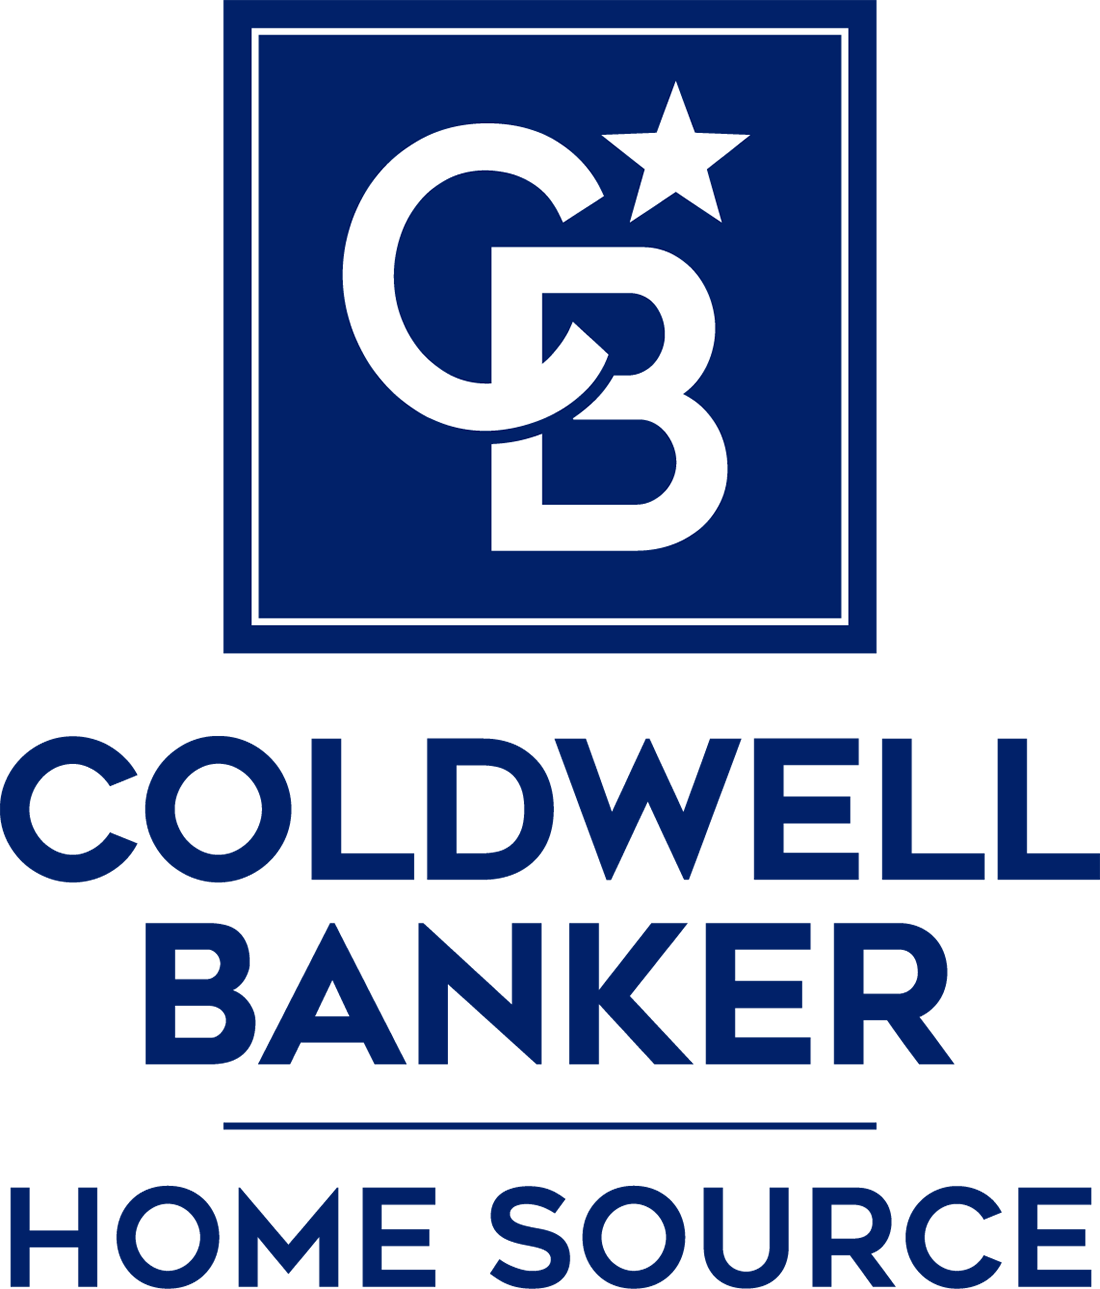 Candy Bunker - Coldwell Banker Home Source Logo